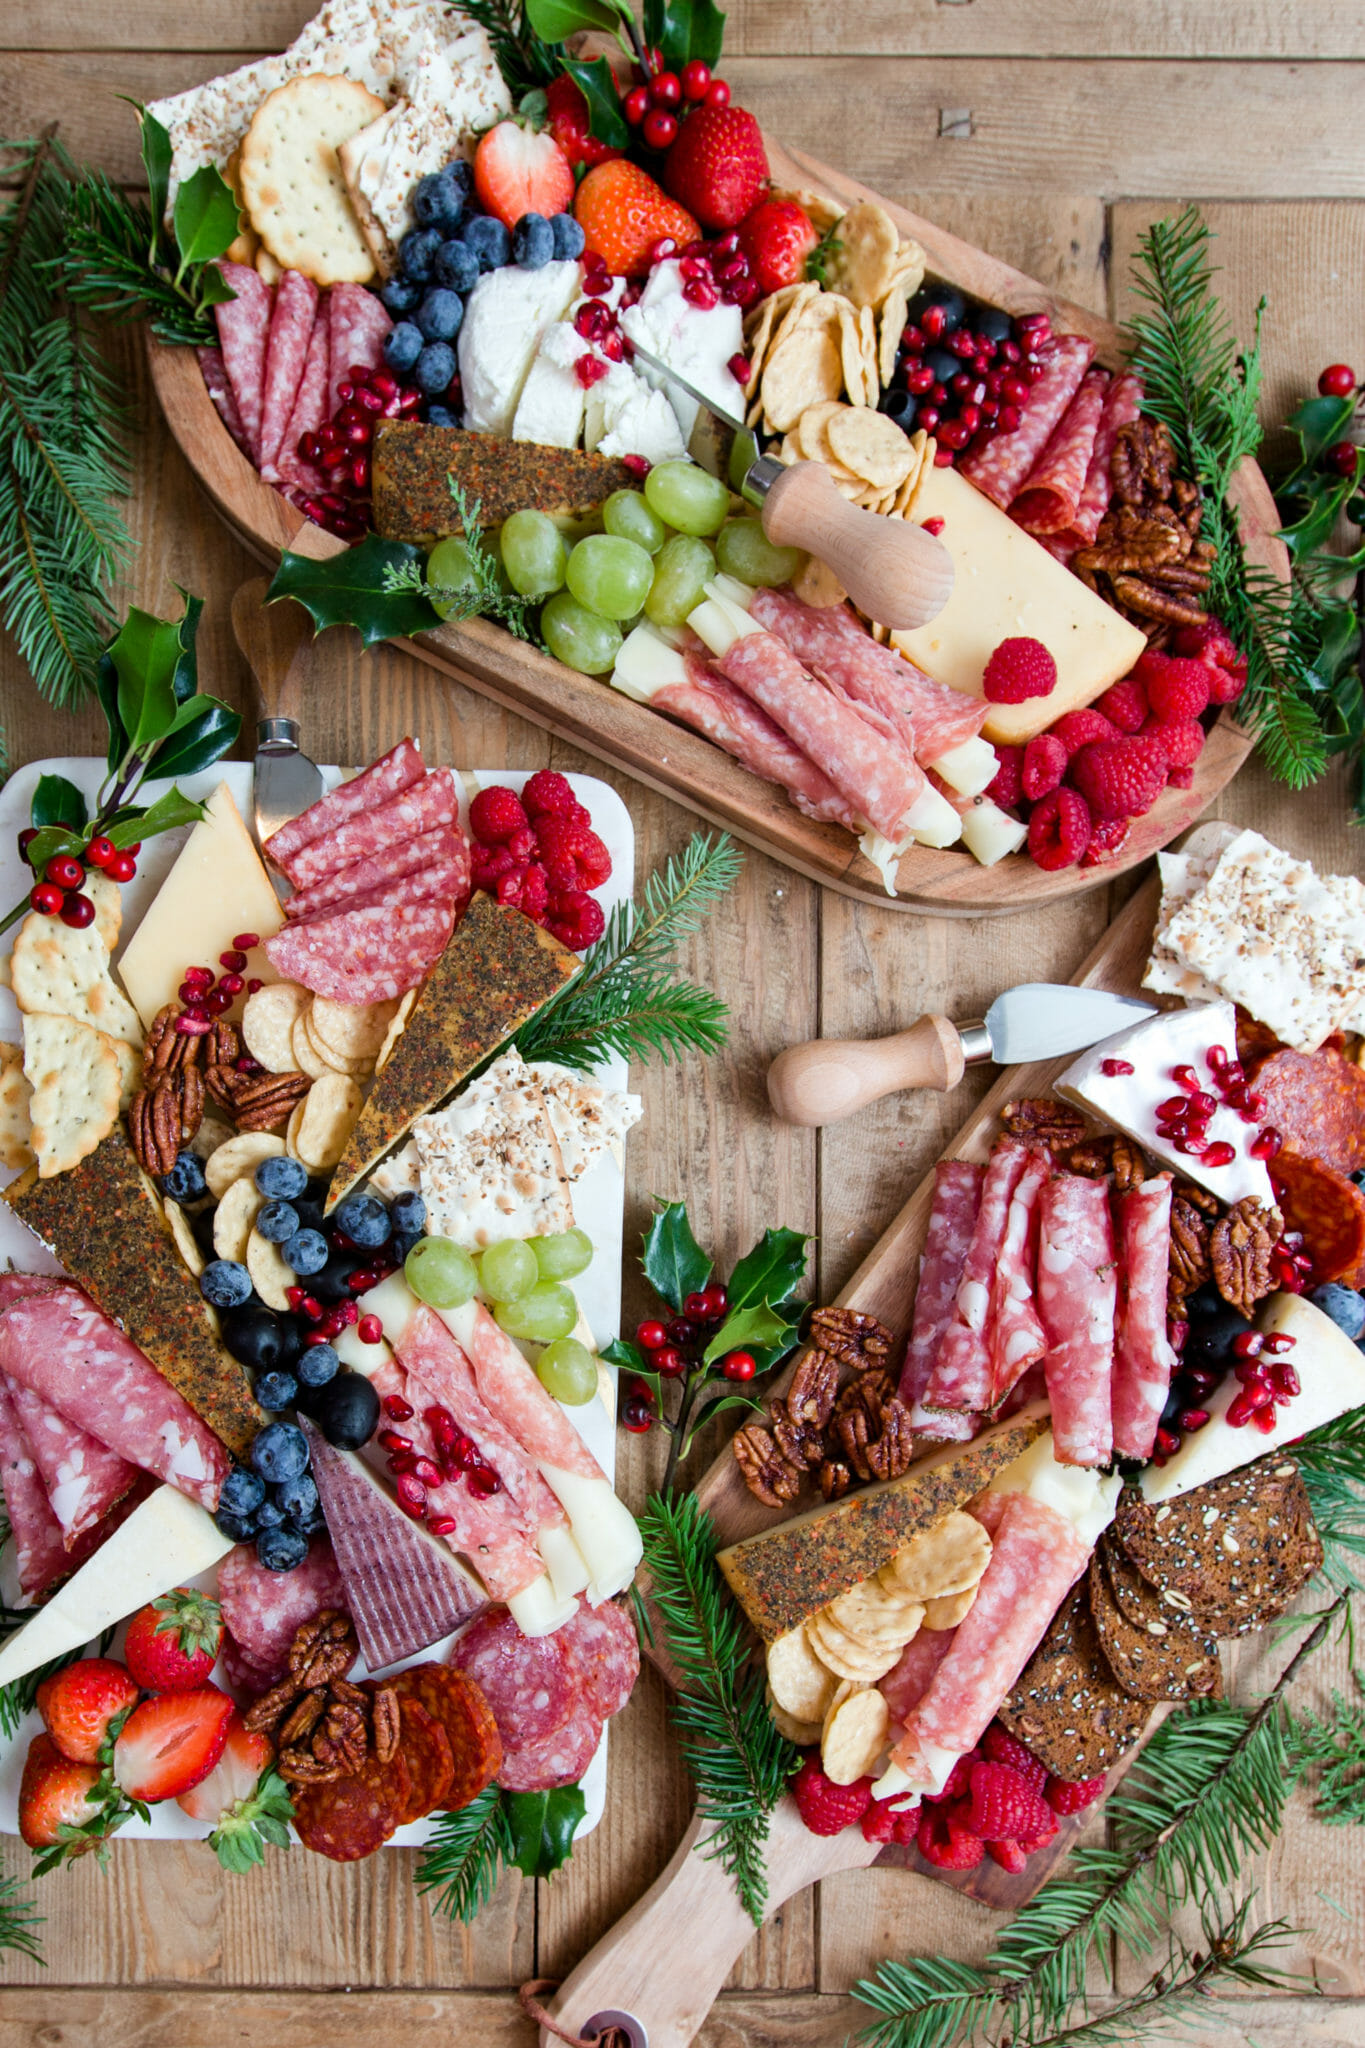 How to Make a Charcuterie Board | charcuterie board ideas | how to build a charcuterie board || JennyCookies.com #charcuterie #charcuterieboard #appetizers #jennycookies